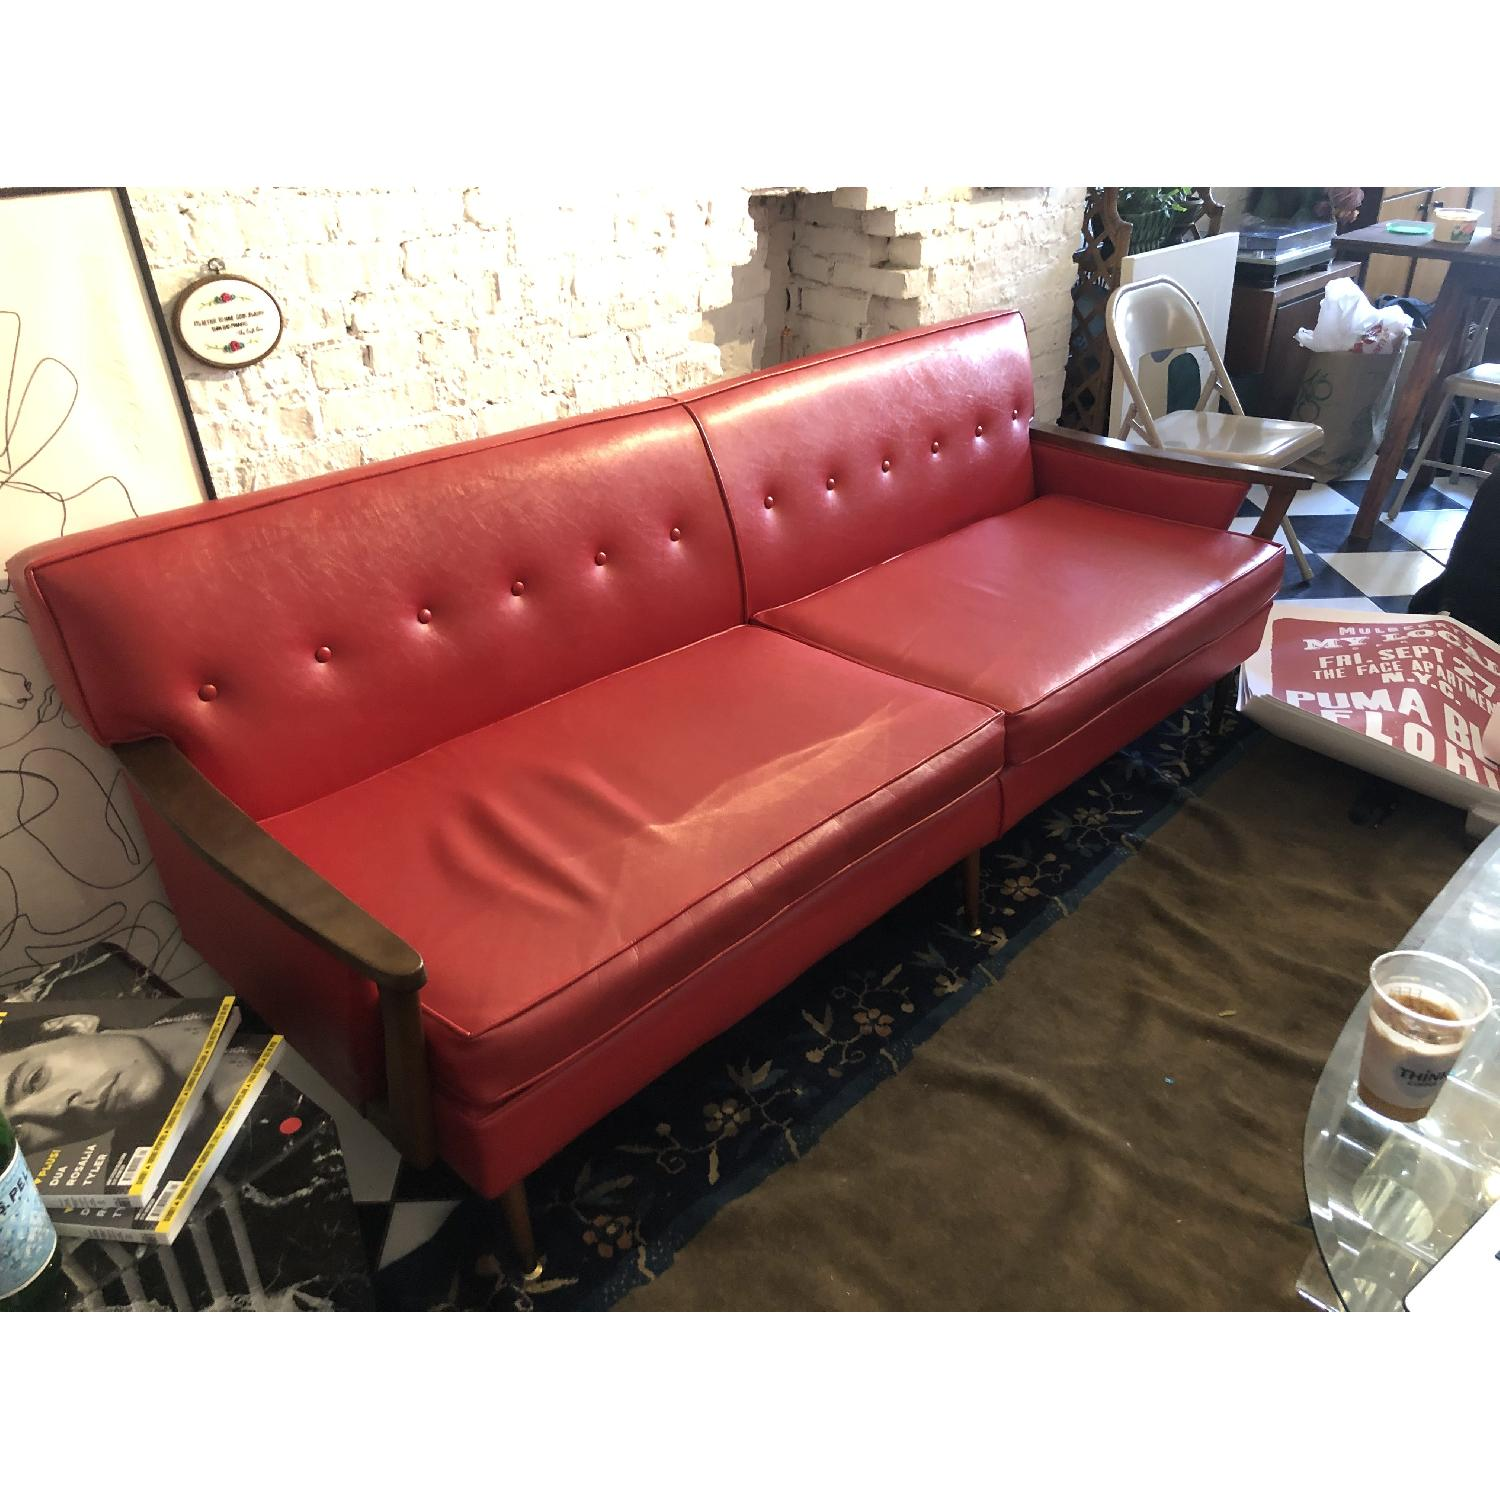 Vintage Red Leather Sofa - image-1